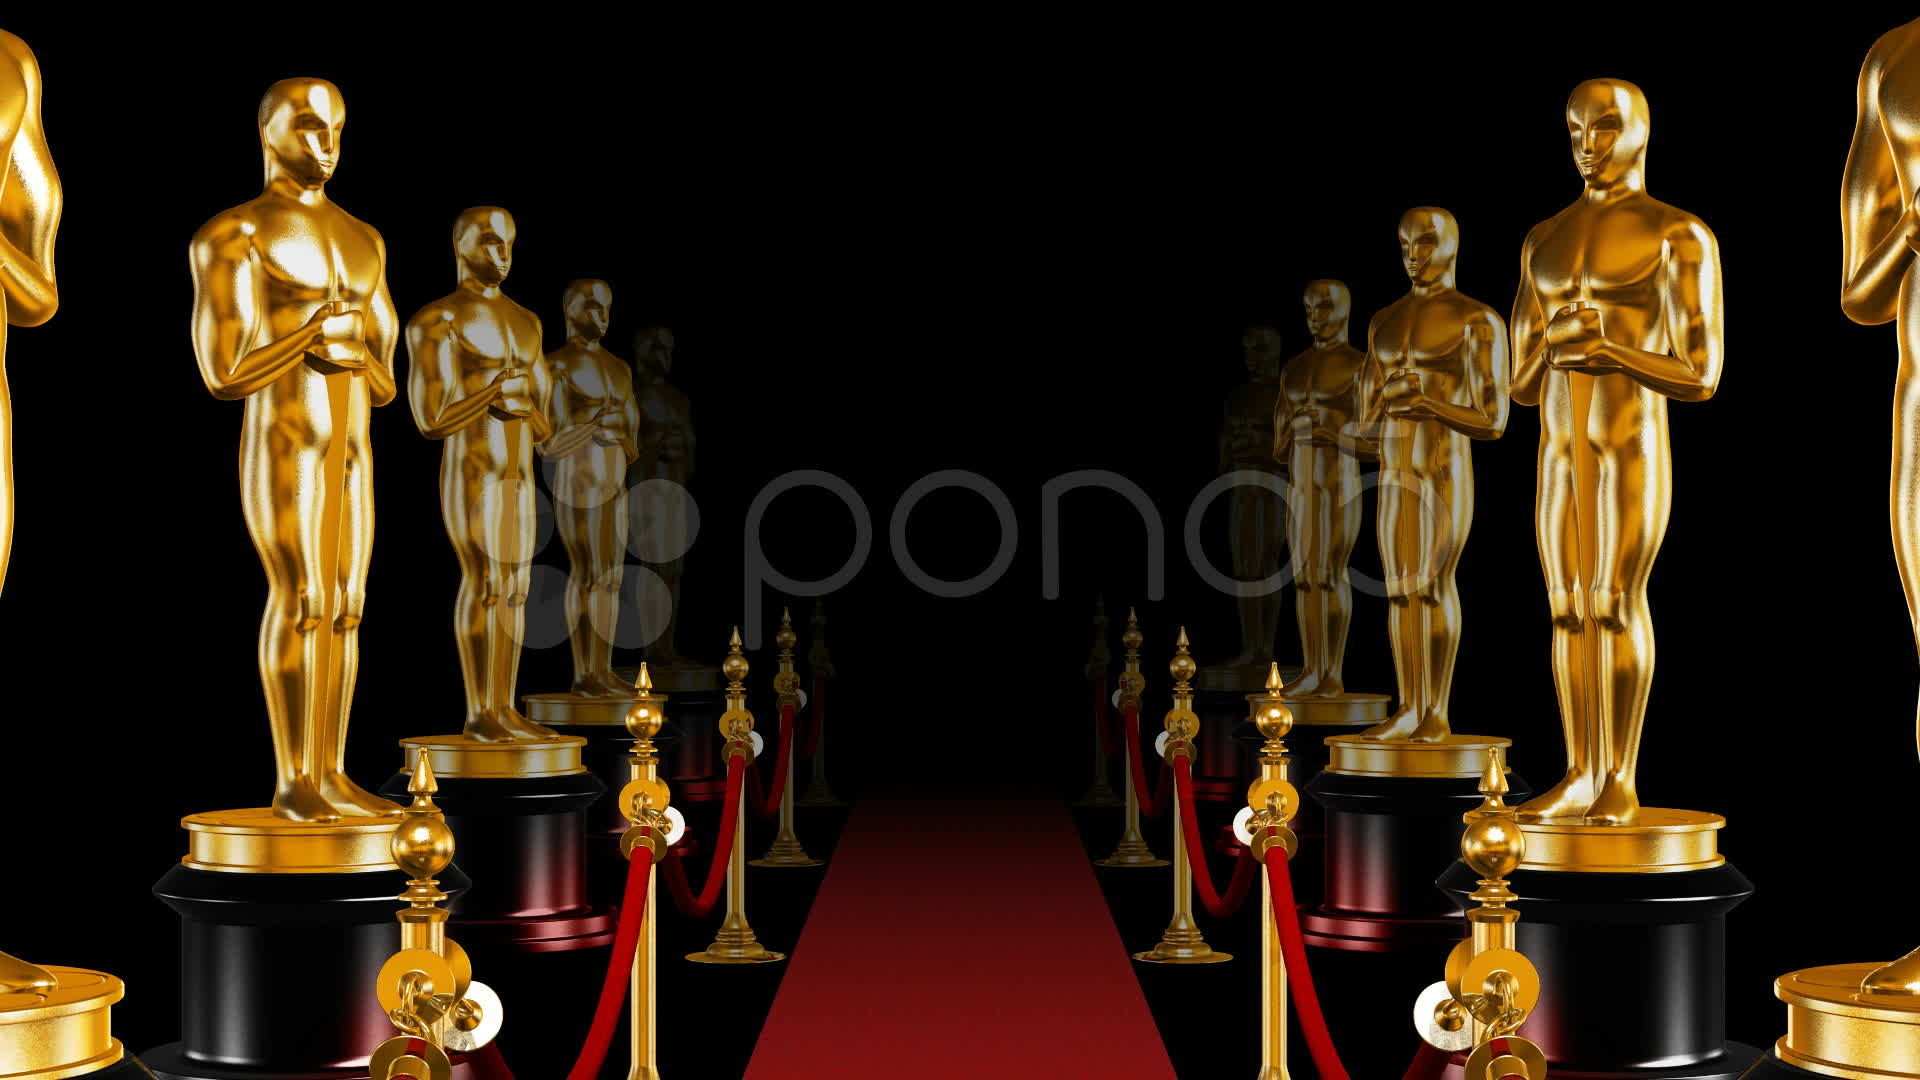 112030 besides Oscars 2015 The Nominations in addition Students Unofficial Guide Oscars together with Oscar Night Backdrops UYCyX4YvjD1mVdoBHRMikOht031lHGsfPOsr59fWtYo further Oscars Producers Fear Lose Viewers Downton Abbey Niche Art Films Set Dominate Nominations. on oscar award statue 2014